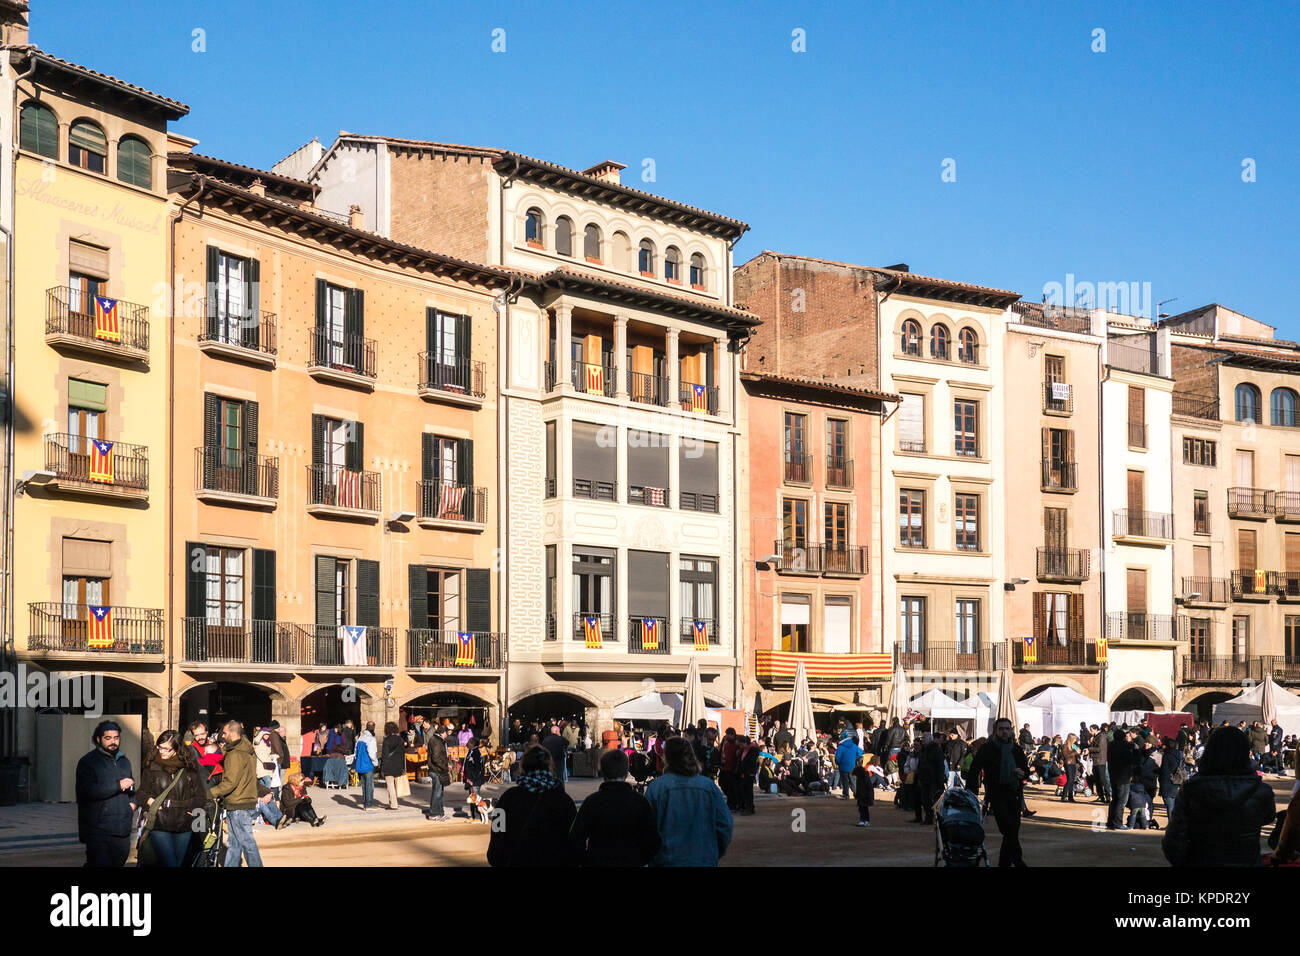 Vic, Spain - December 6, 2013 - View of the facades of the main square buildings in Vic, Spain - Stock Image